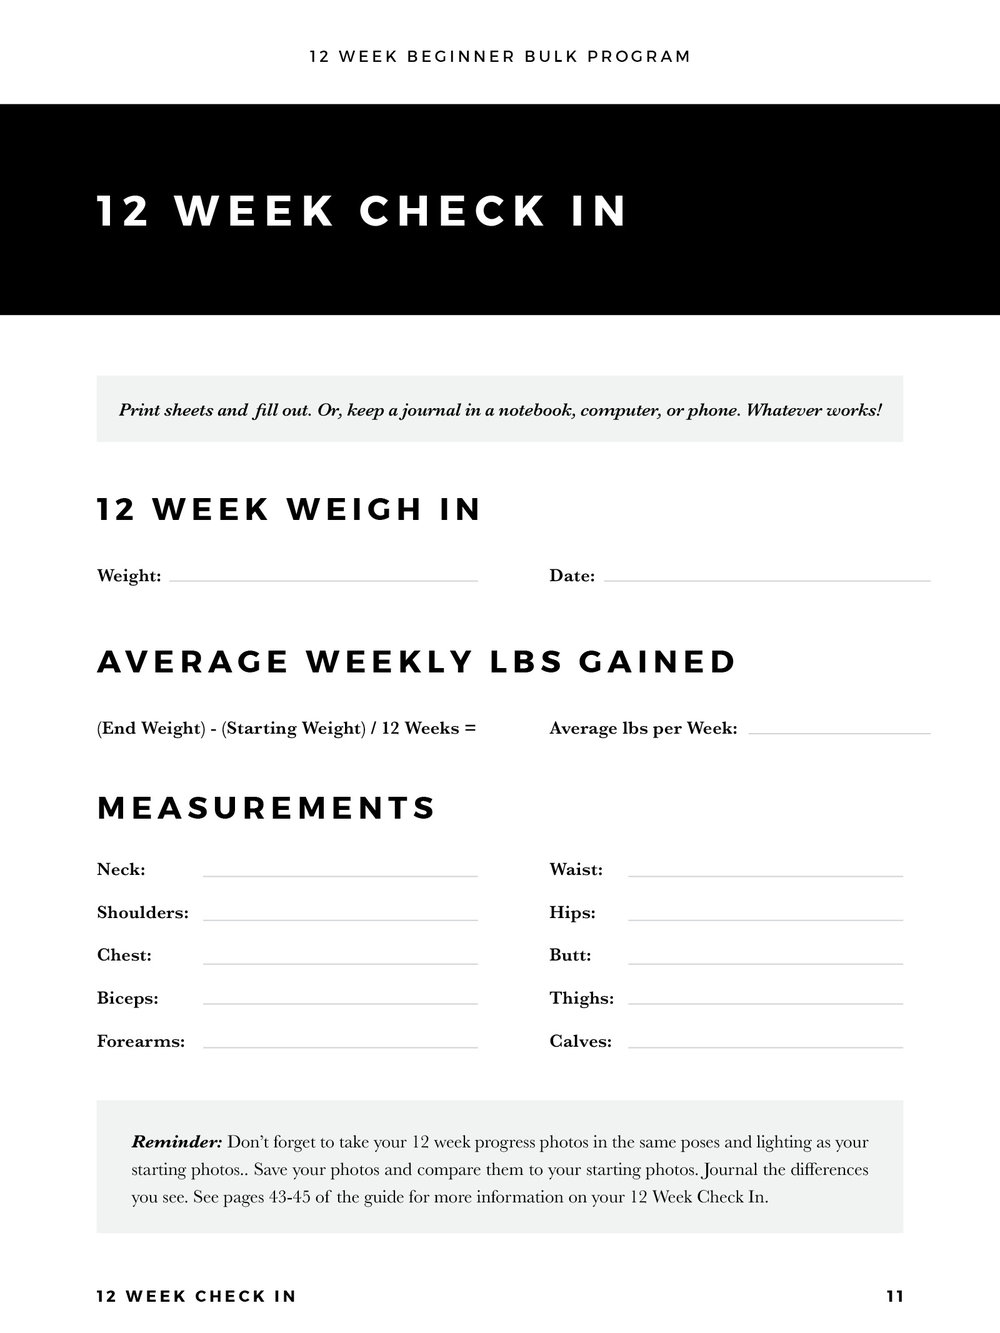 12WeekBeginnerBulkProgram_Charts11.jpg